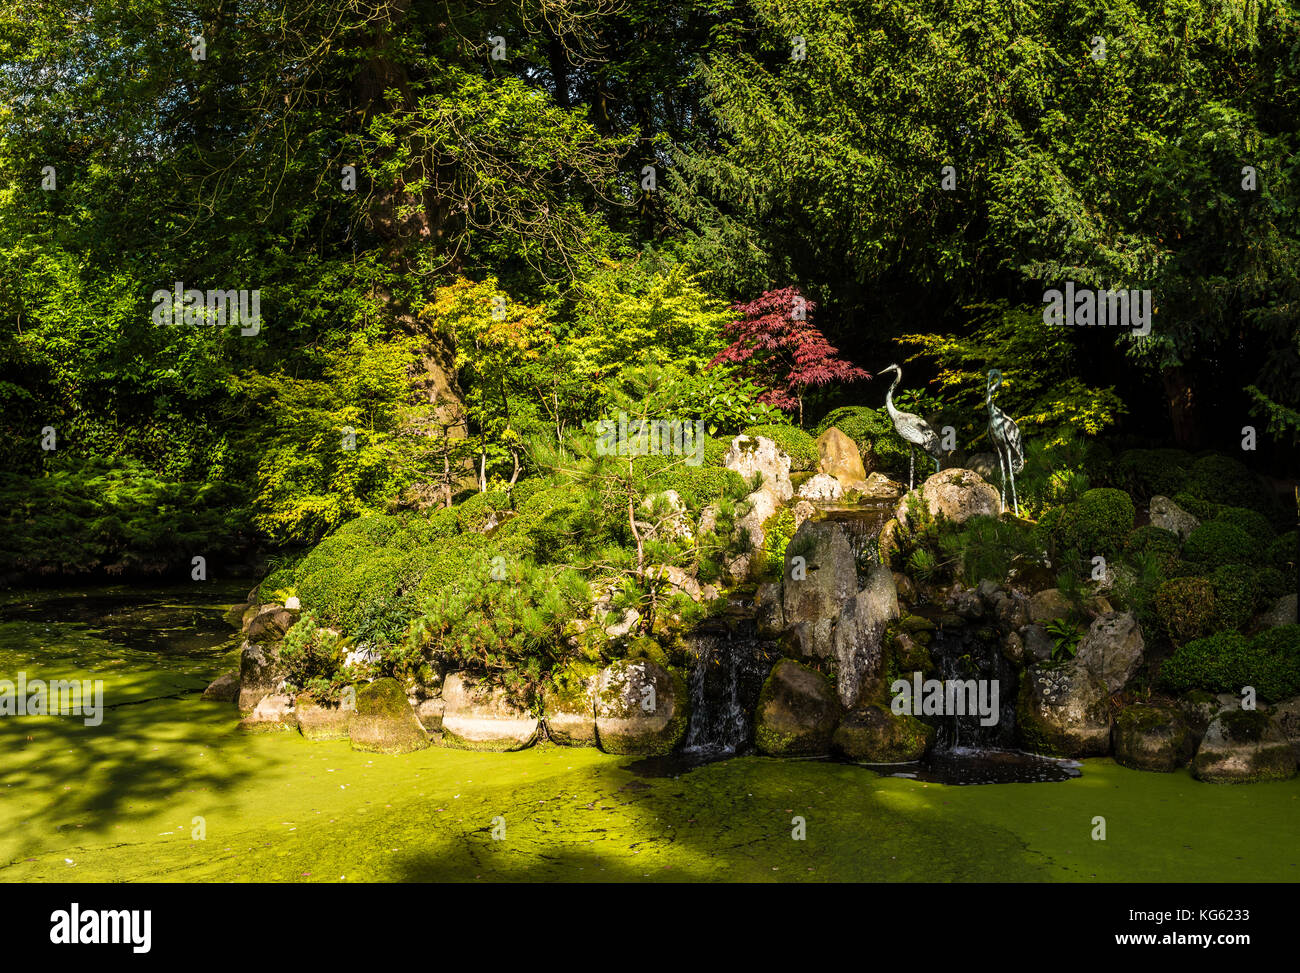 Japanese tea garden, Le Manoir, Oxfordshire, UK - Stock Image